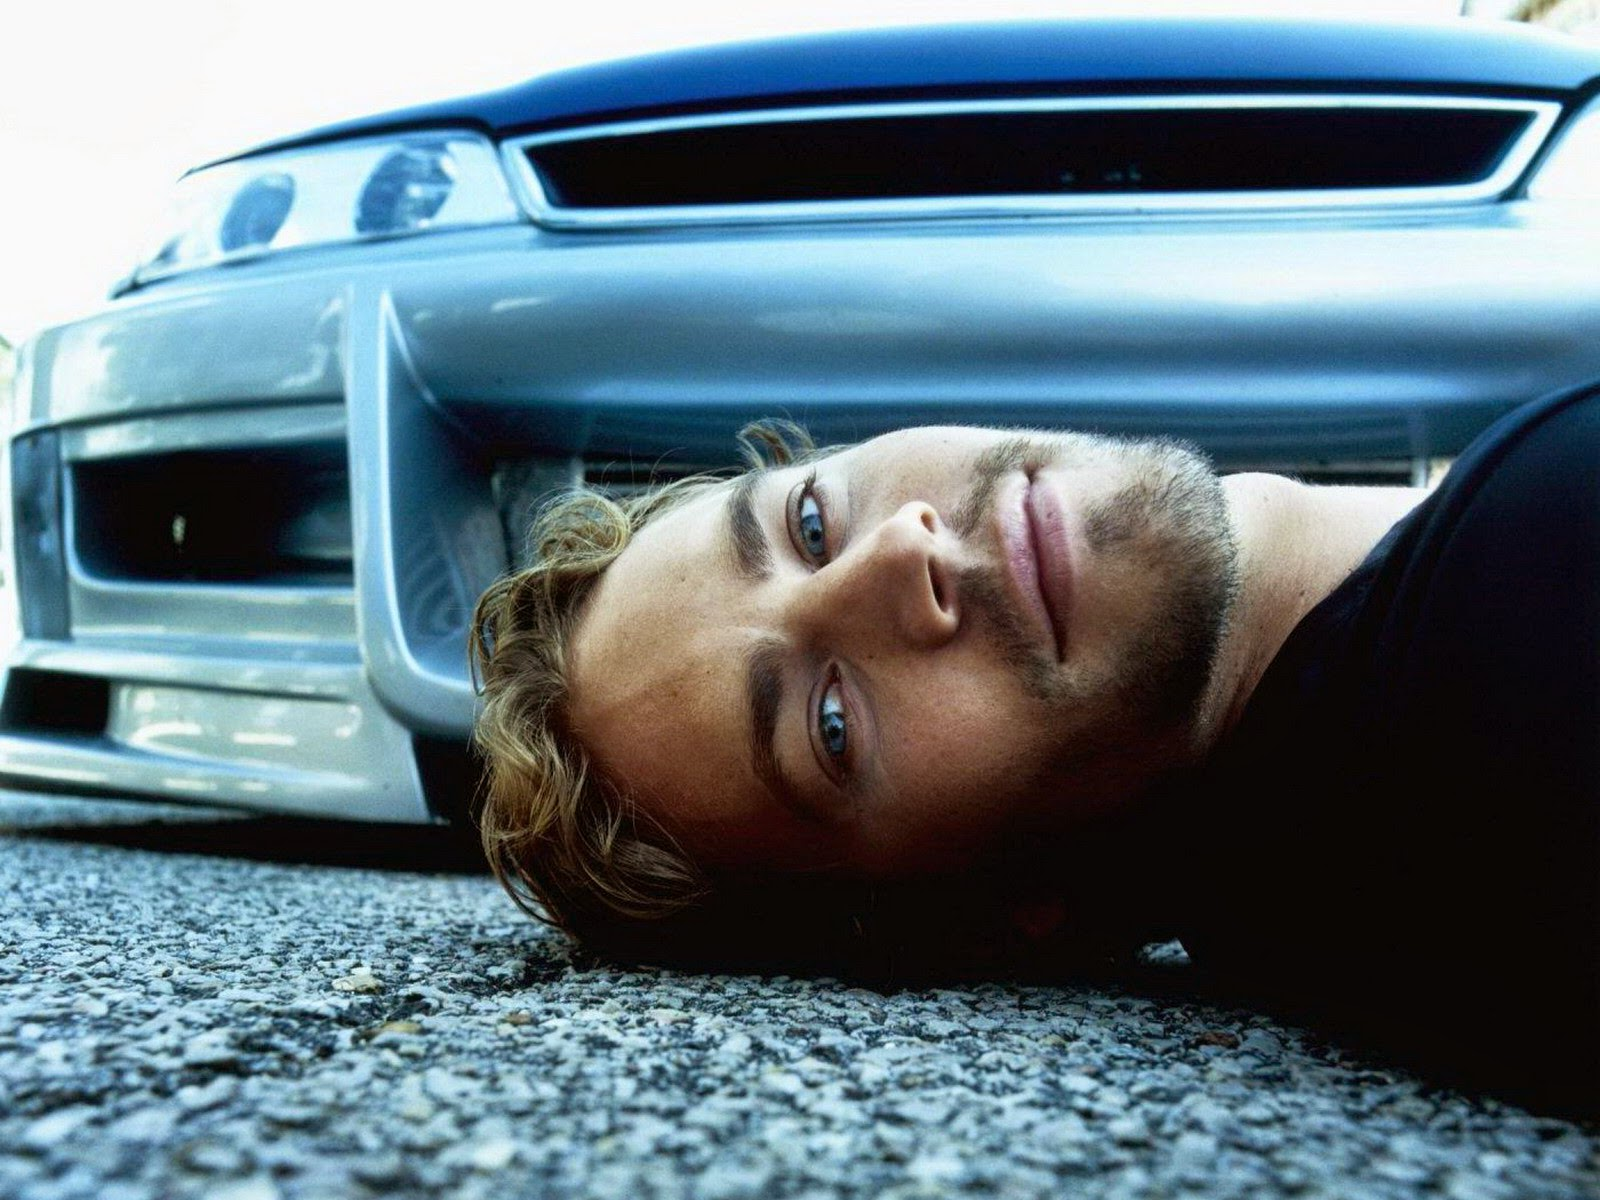 Fast And Furious Hd Wallpaper Background: Free HD Wallpapers: Fast And Furious & Paul Walker Misc HD